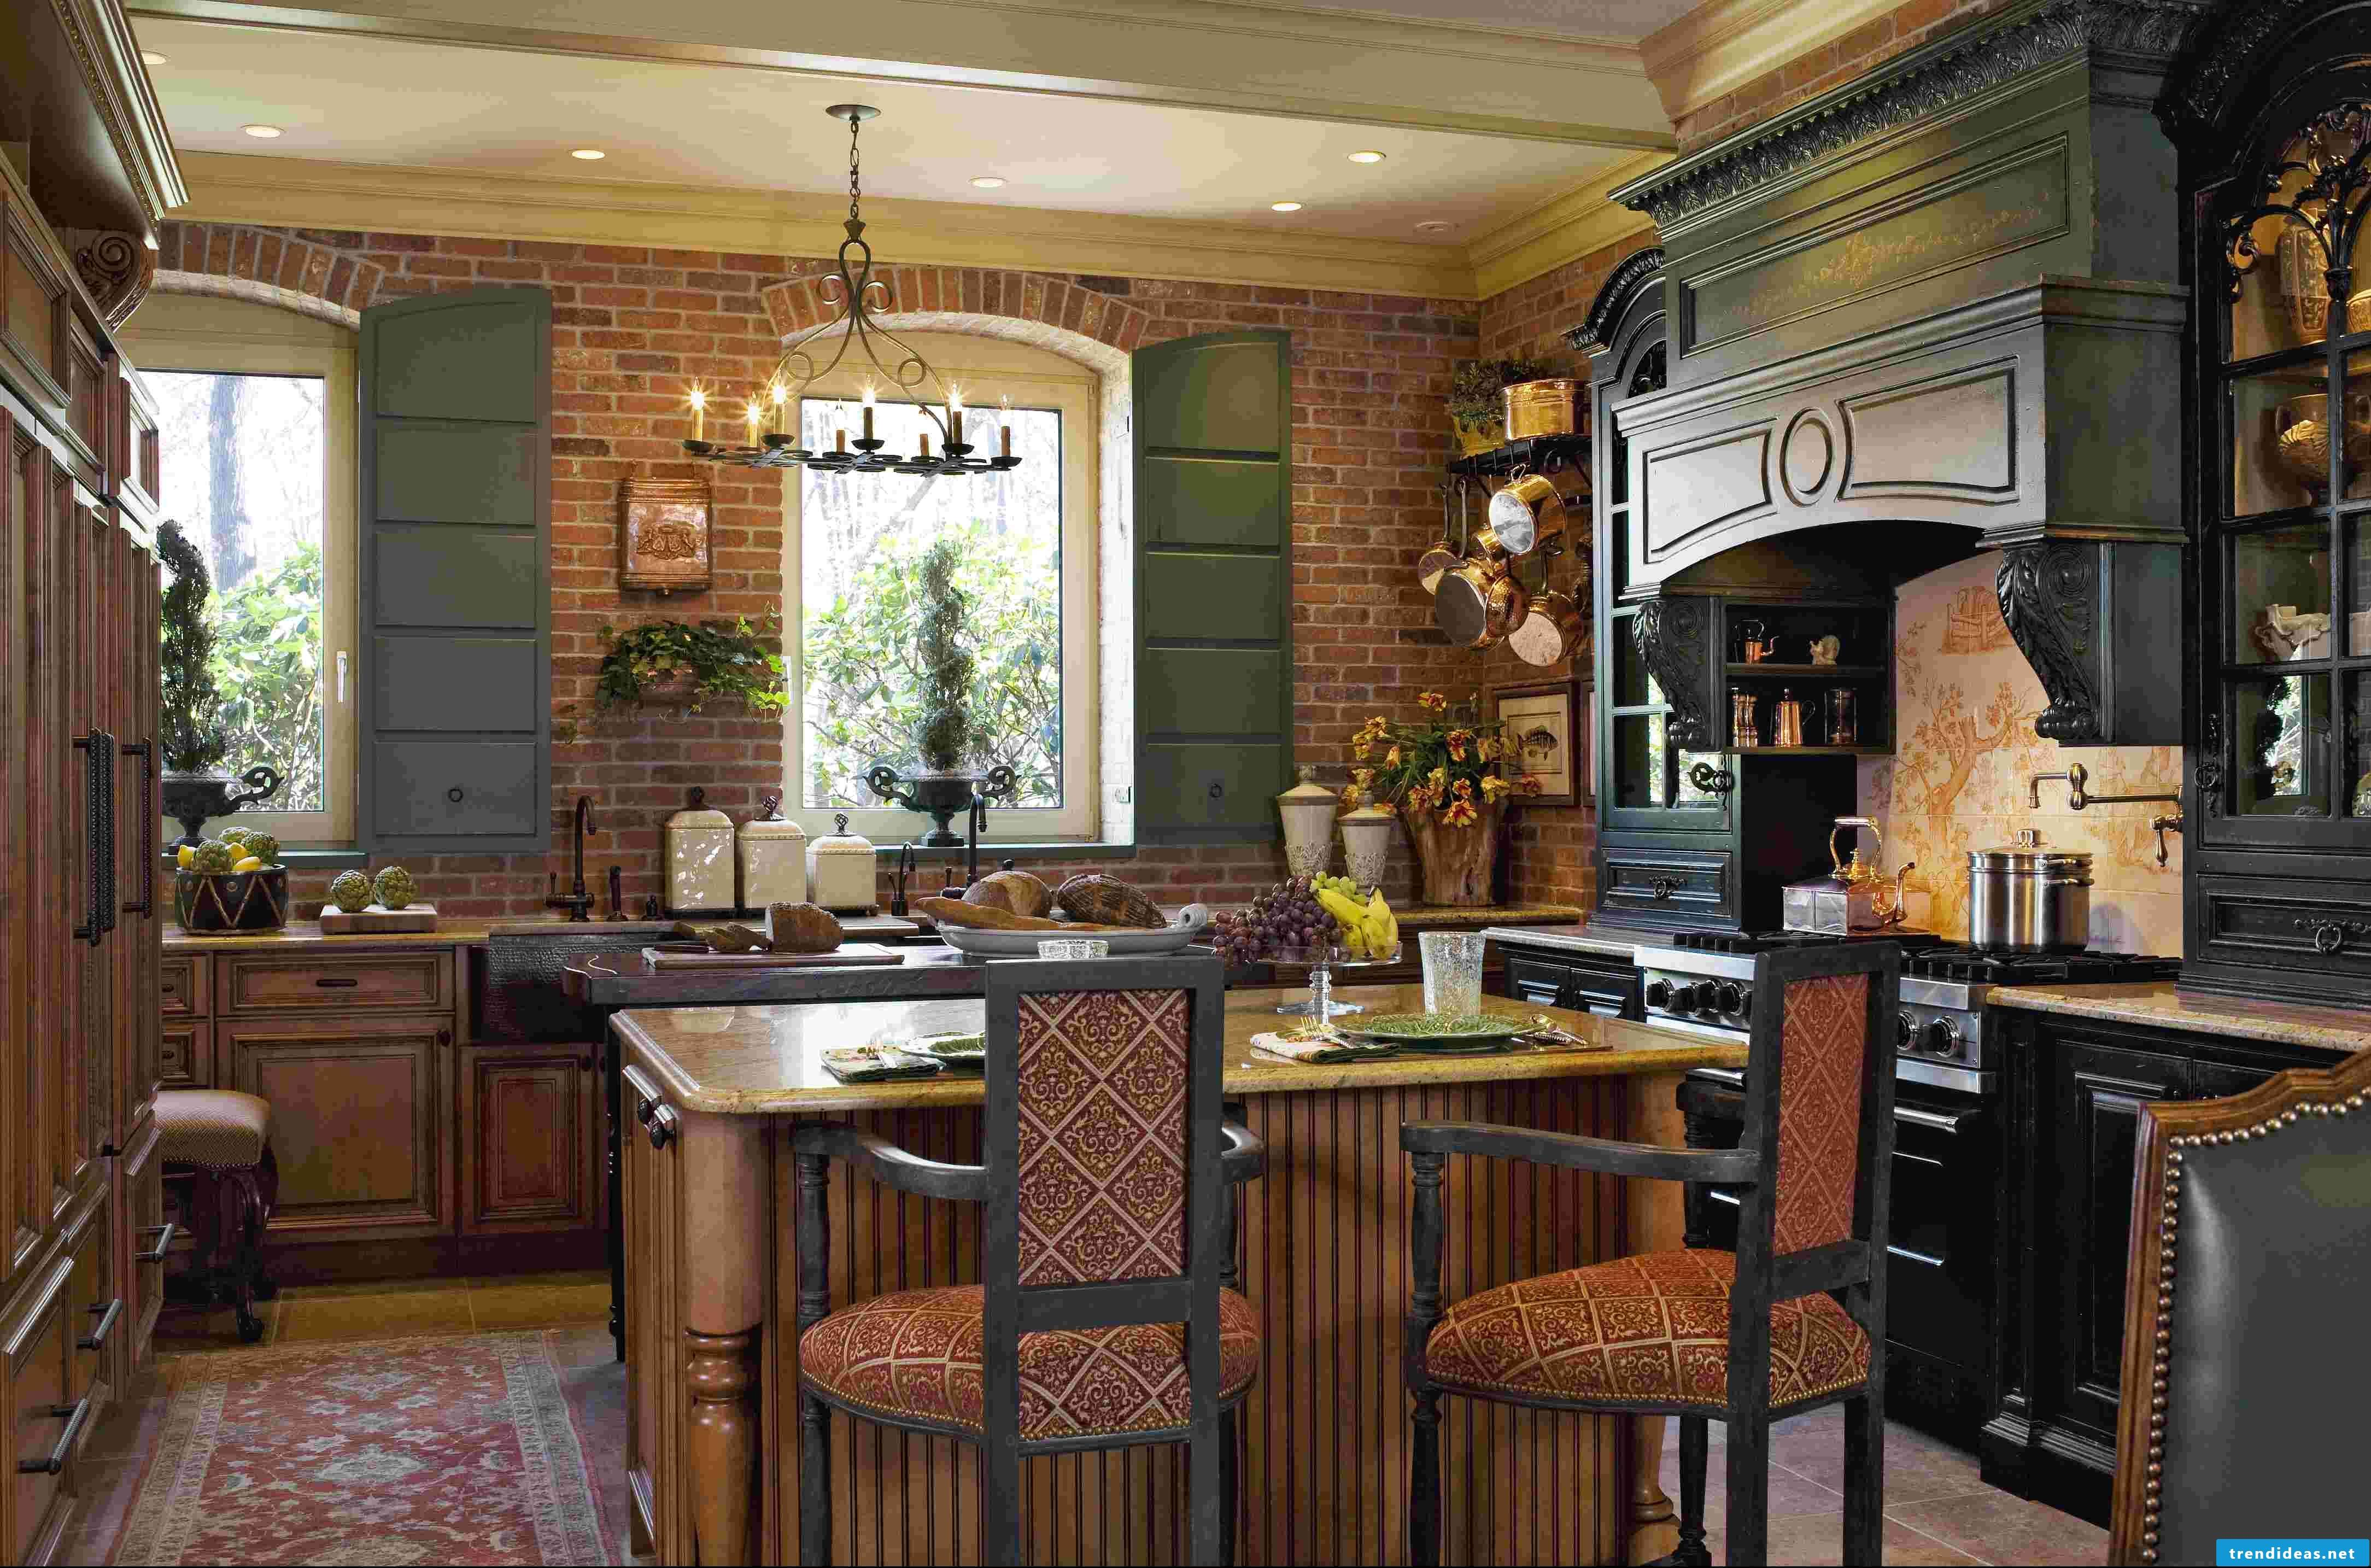 Residential ideas for brick in the provence kitchen